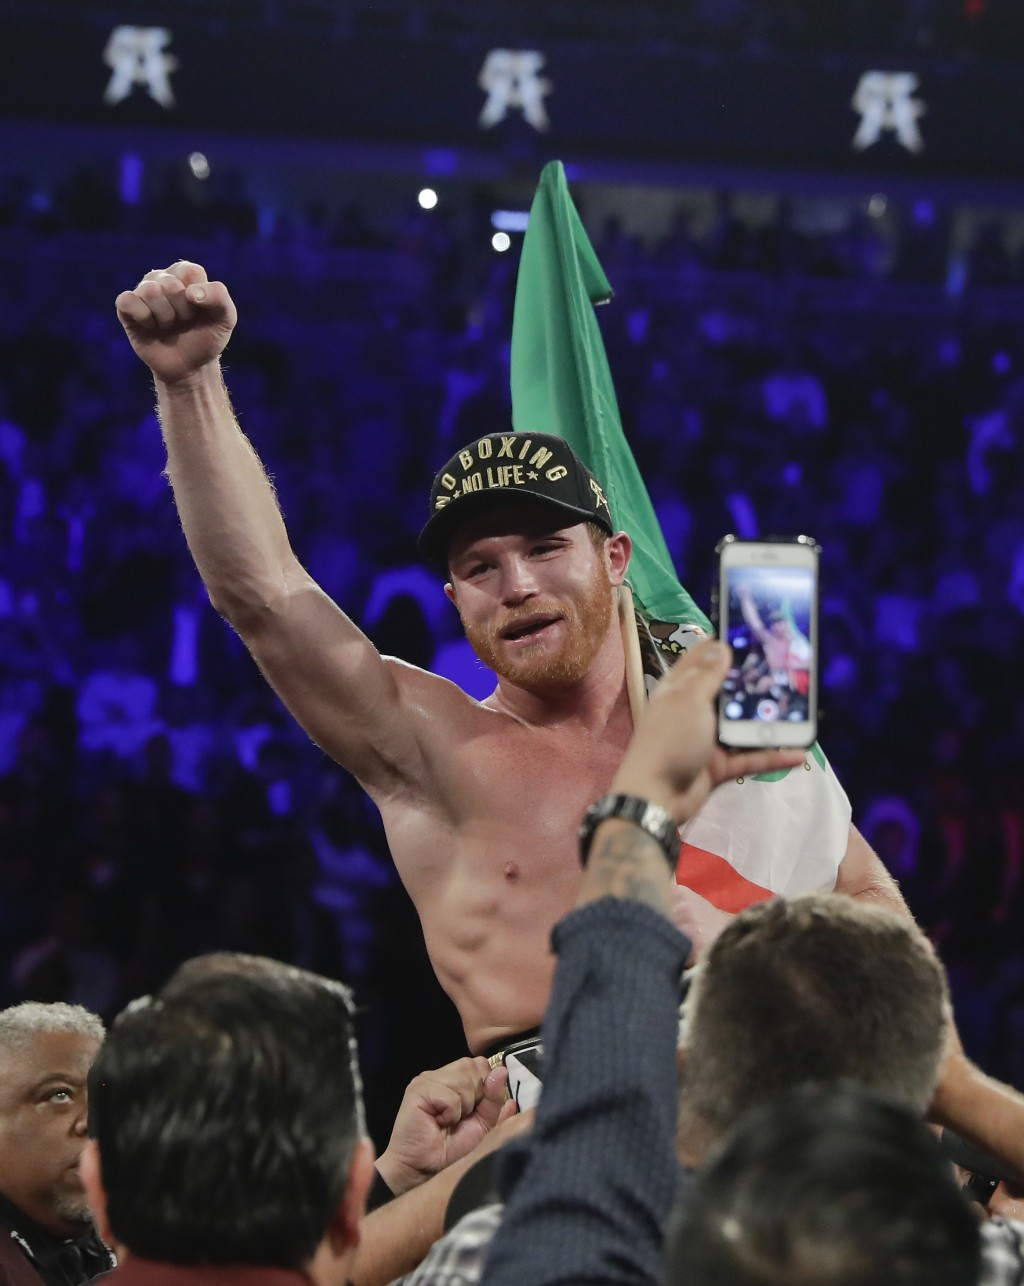 Canelo Alvarez celebrates after defeating Gennady Golovkin by majority decision in a middleweight title boxing match, Saturday, Sept. 15, 2018, in Las...